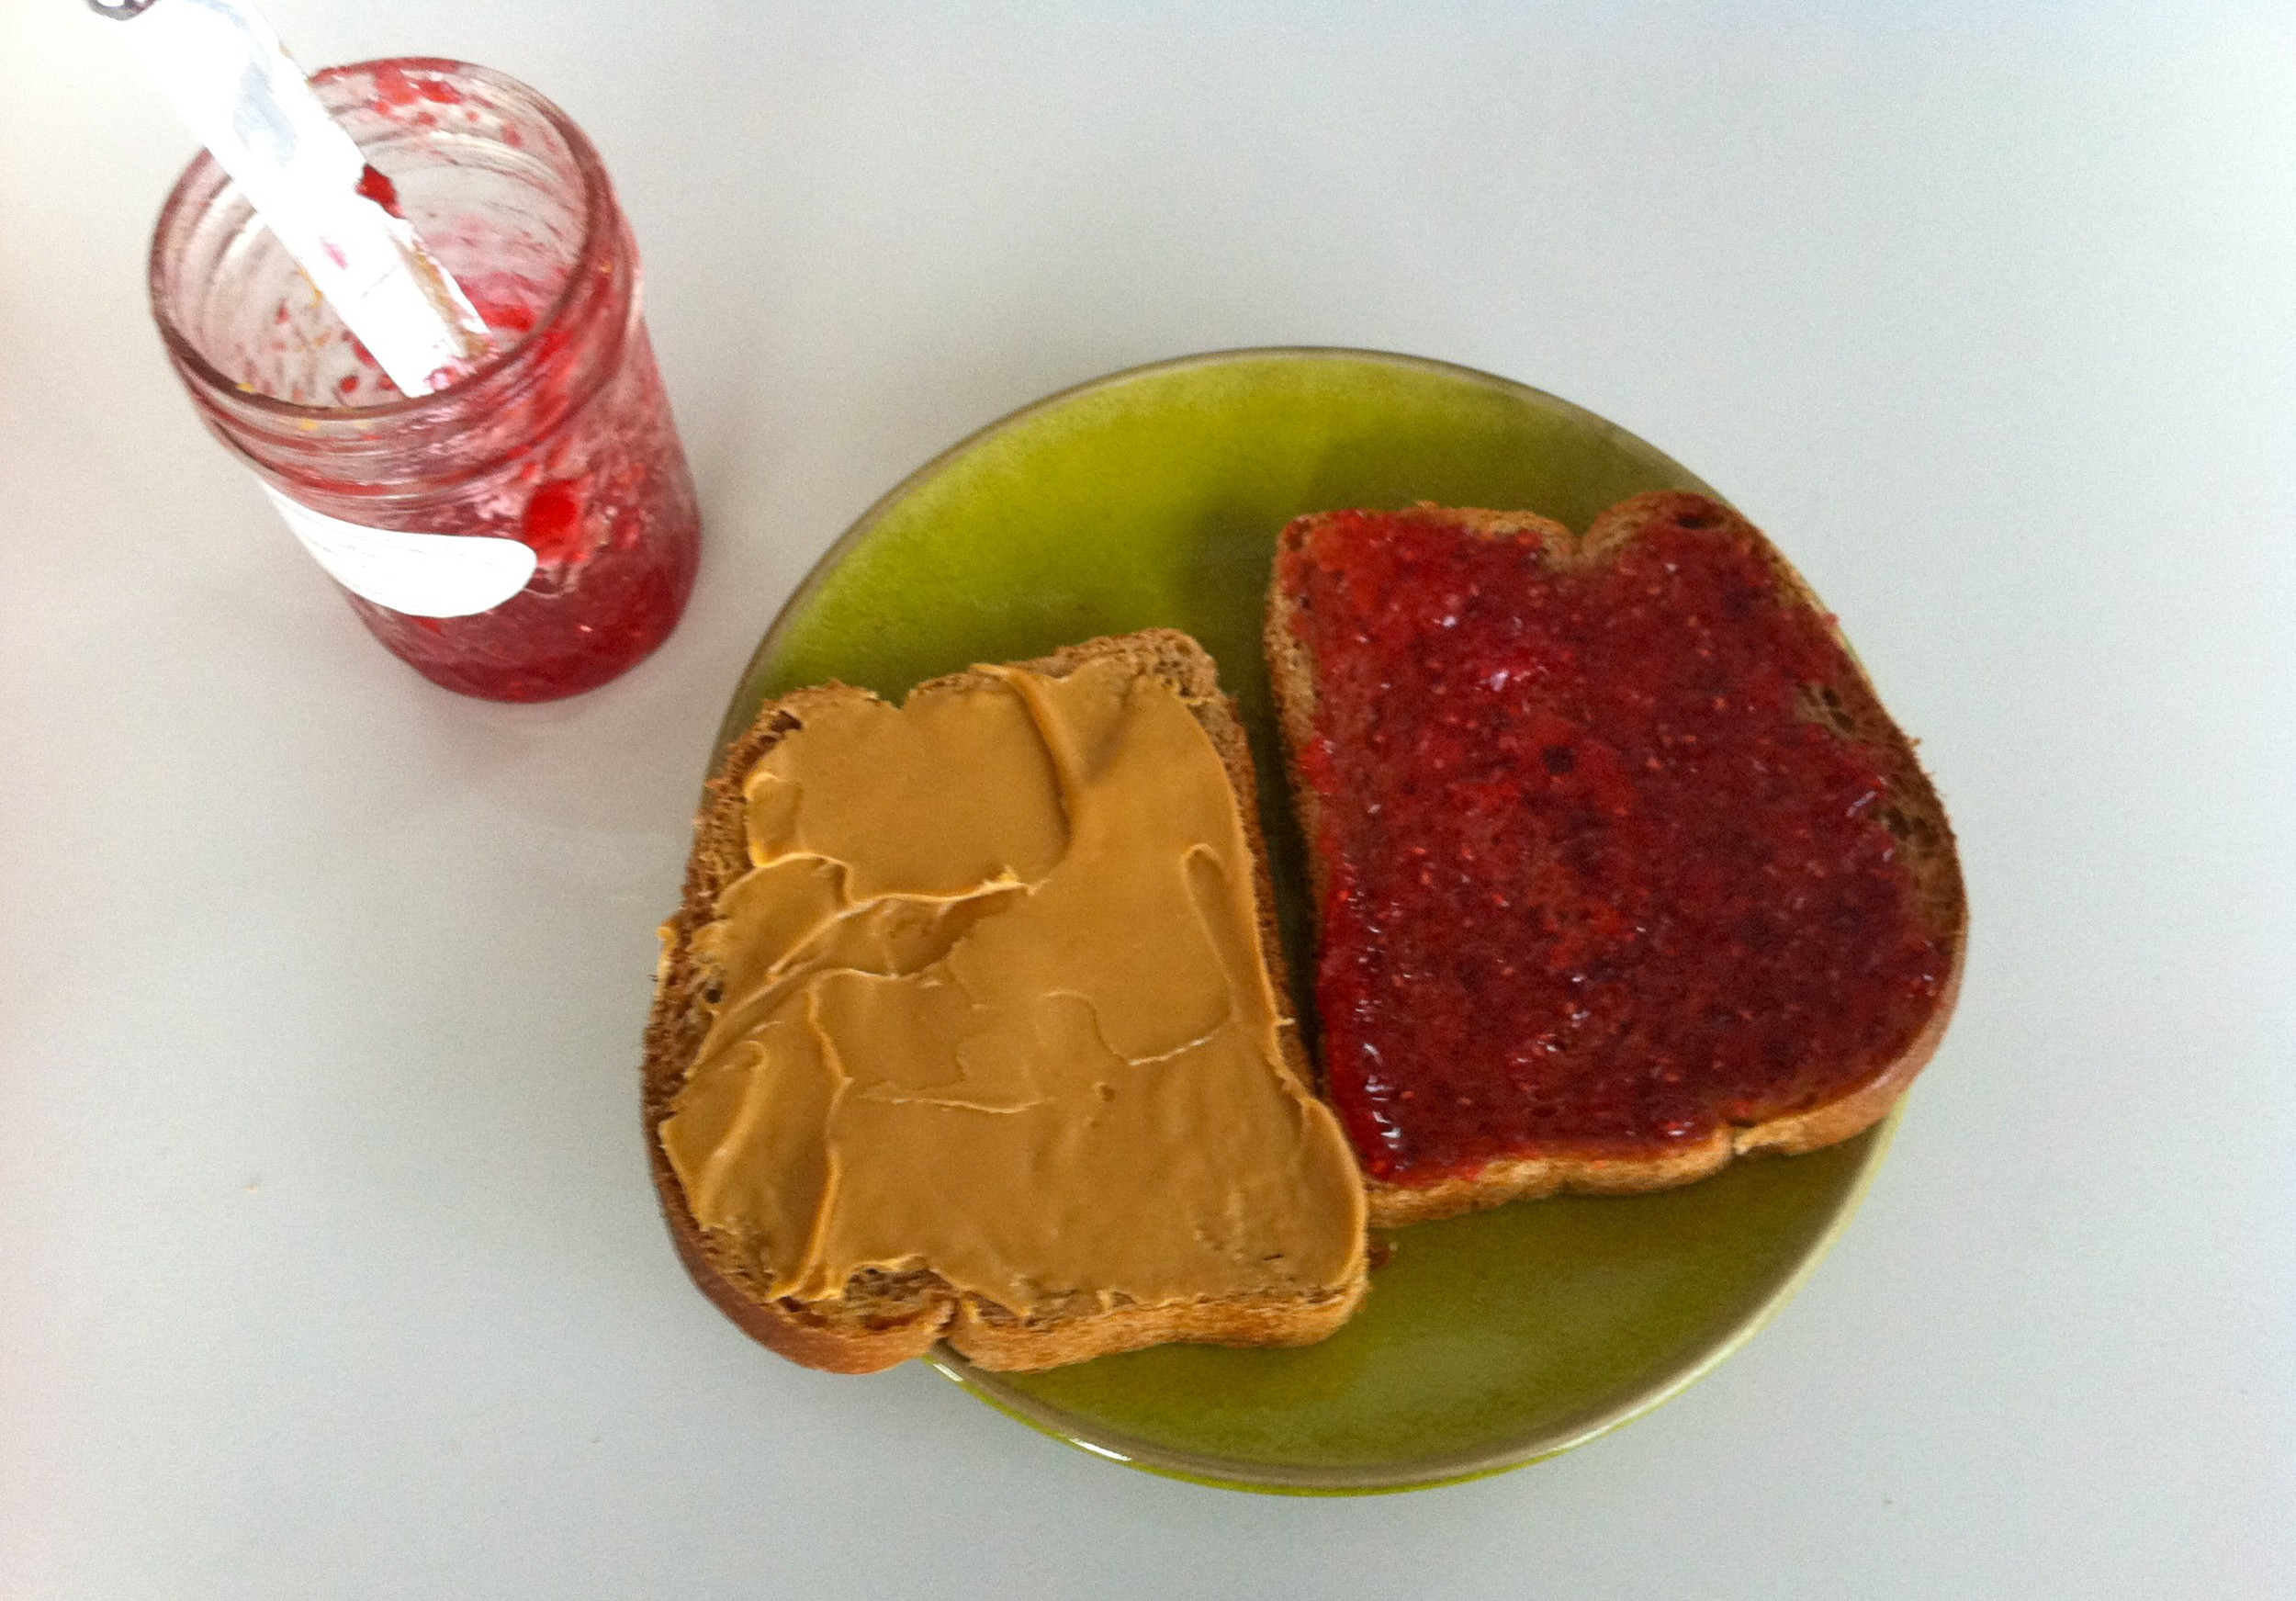 PB&J is vegan and delicious.